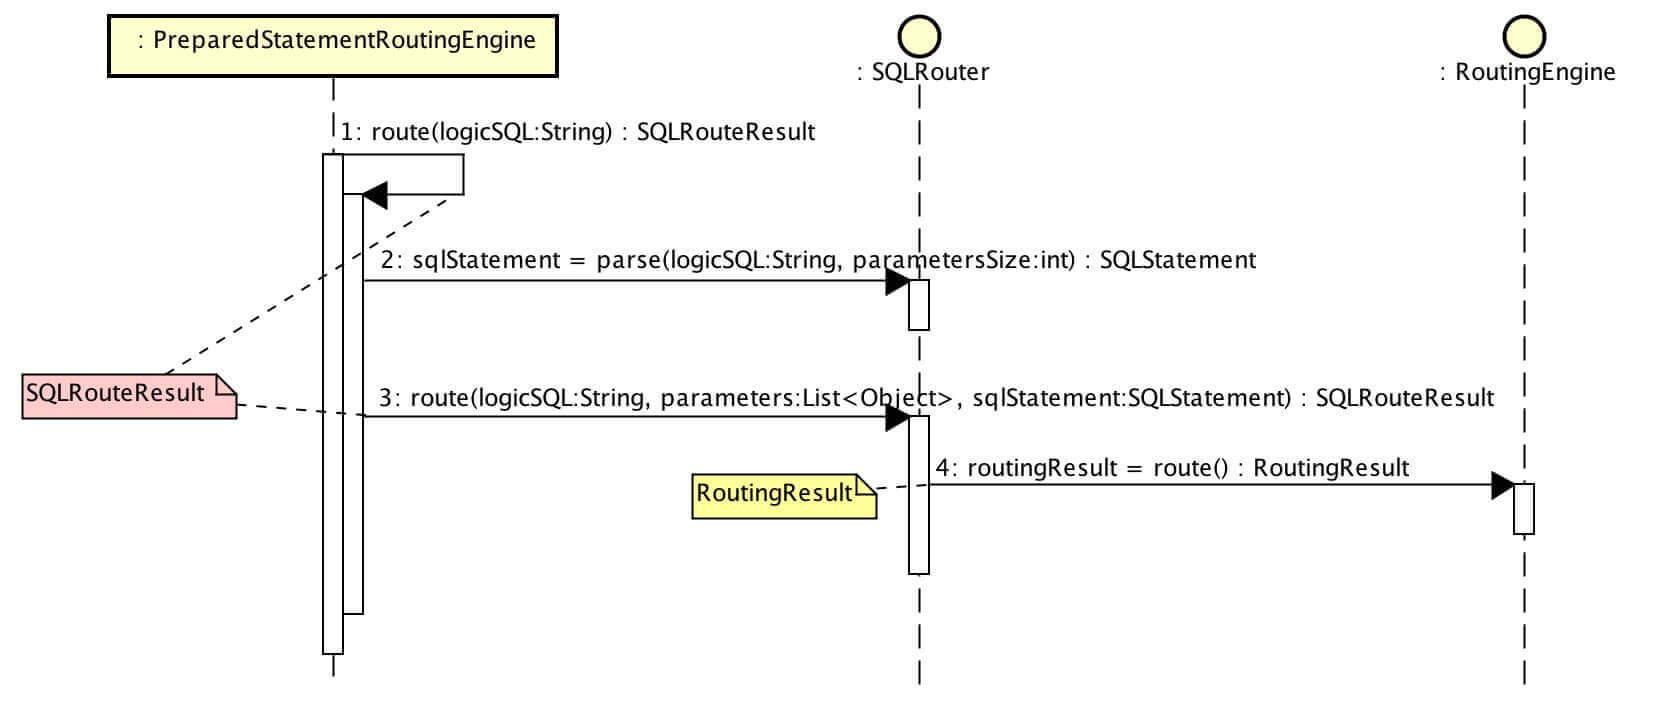 2. sqlrouteresult